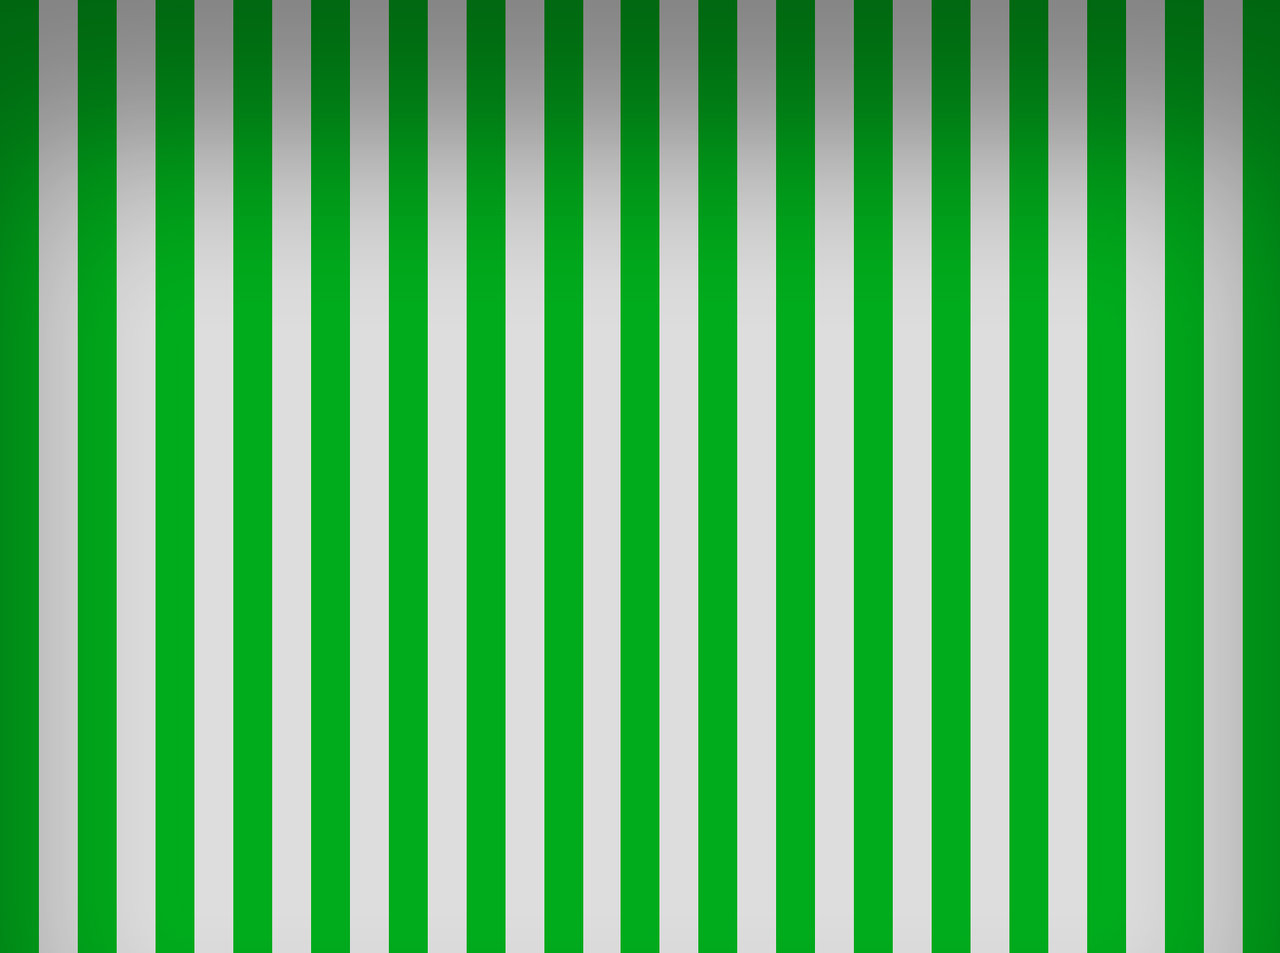 and green stripes